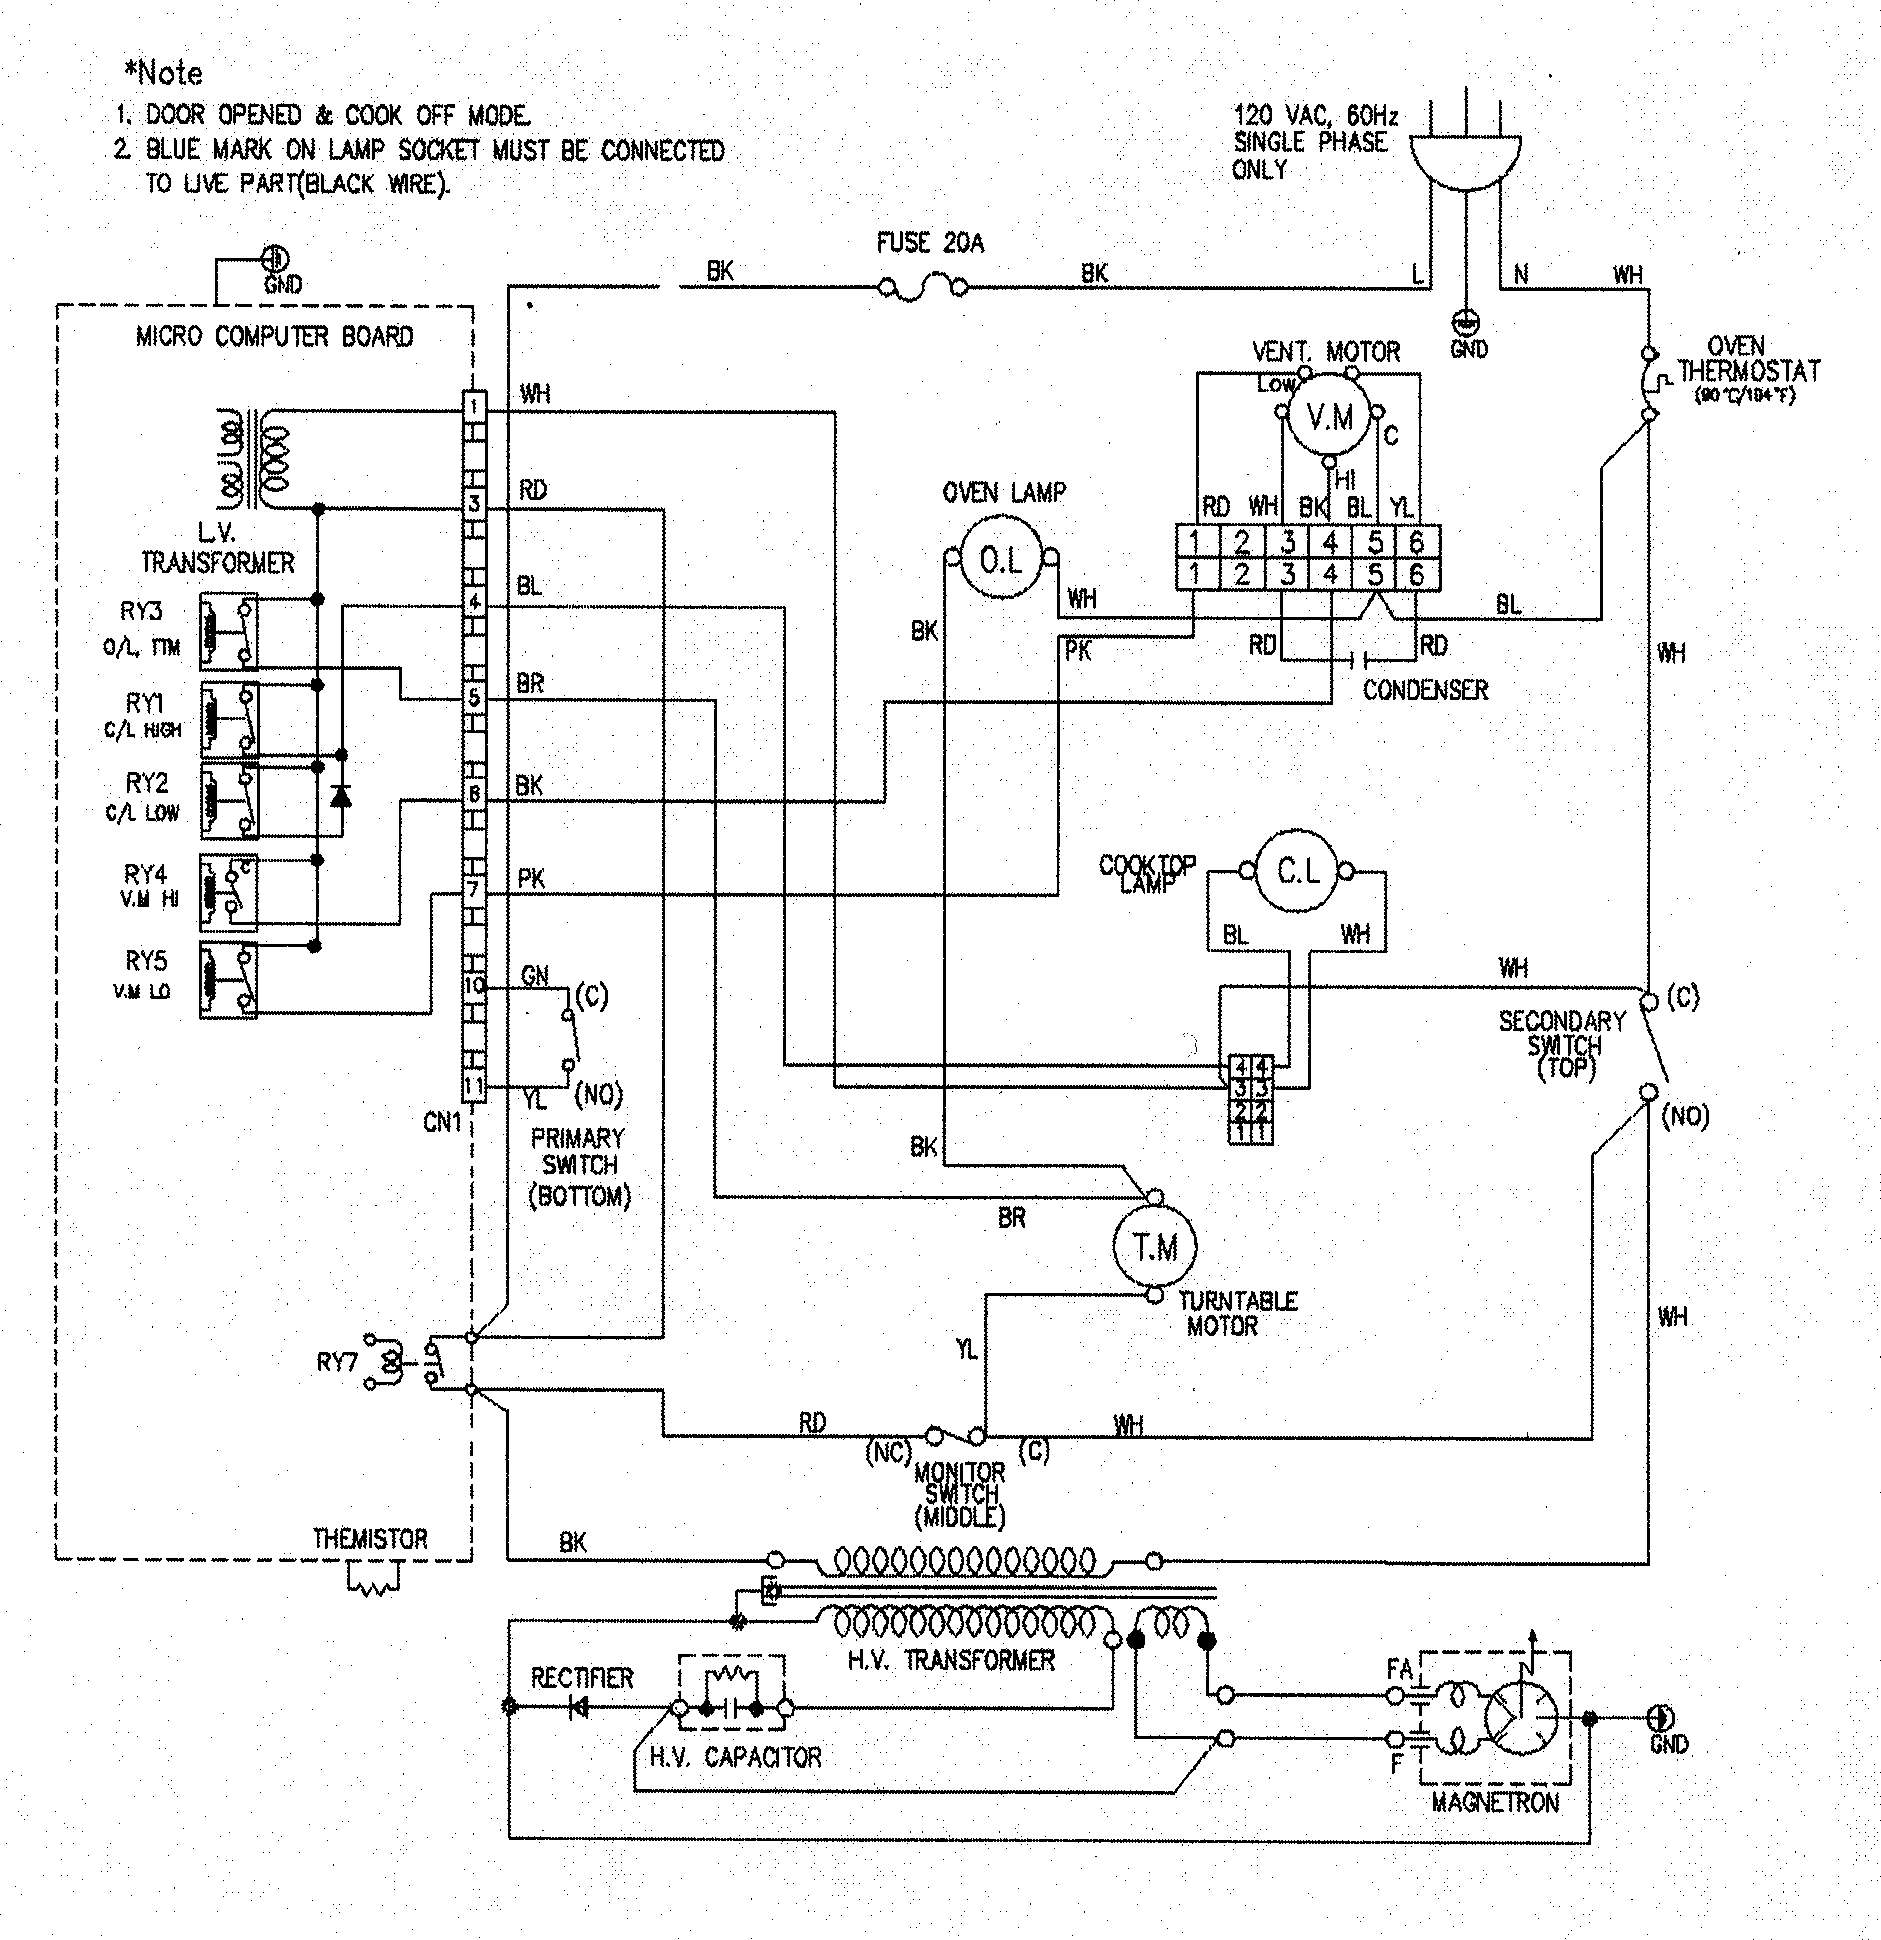 Wiring Diagram Of A Microwave Oven Thermostat Wiring Electric Oven And Hob Electric Oven